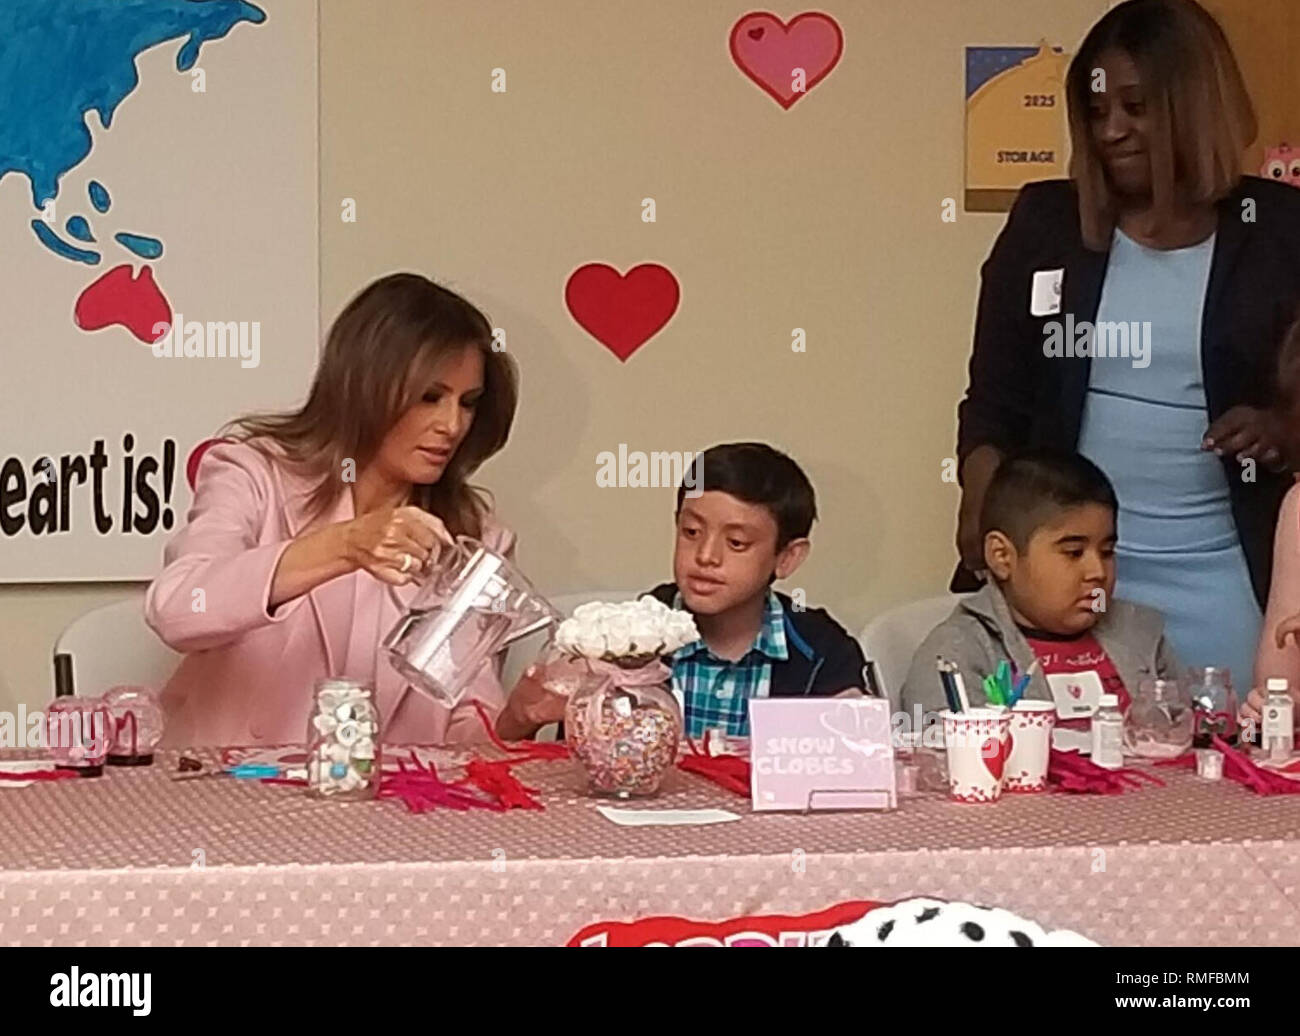 "BETHESDA, MD FEBRUARY 14: Dressed in all pink, first lady Melania Trump brought Valentine's Day cards to young patients being treated at the Children's Inn at the National Institutes of Health. Meet Amani. He is 13 yrs old & just completed his first treatment today.  He gave FLOTUS a necklace inscribed w/ ""Faith"" & ""Hope"" - two words he keeps close during treatments. He has a bracelet he will wear to match FLOTUS on Thursday February 14, 2019 IN Bethesda, MD  People:  First Lady Melania Trump - Stock Image"